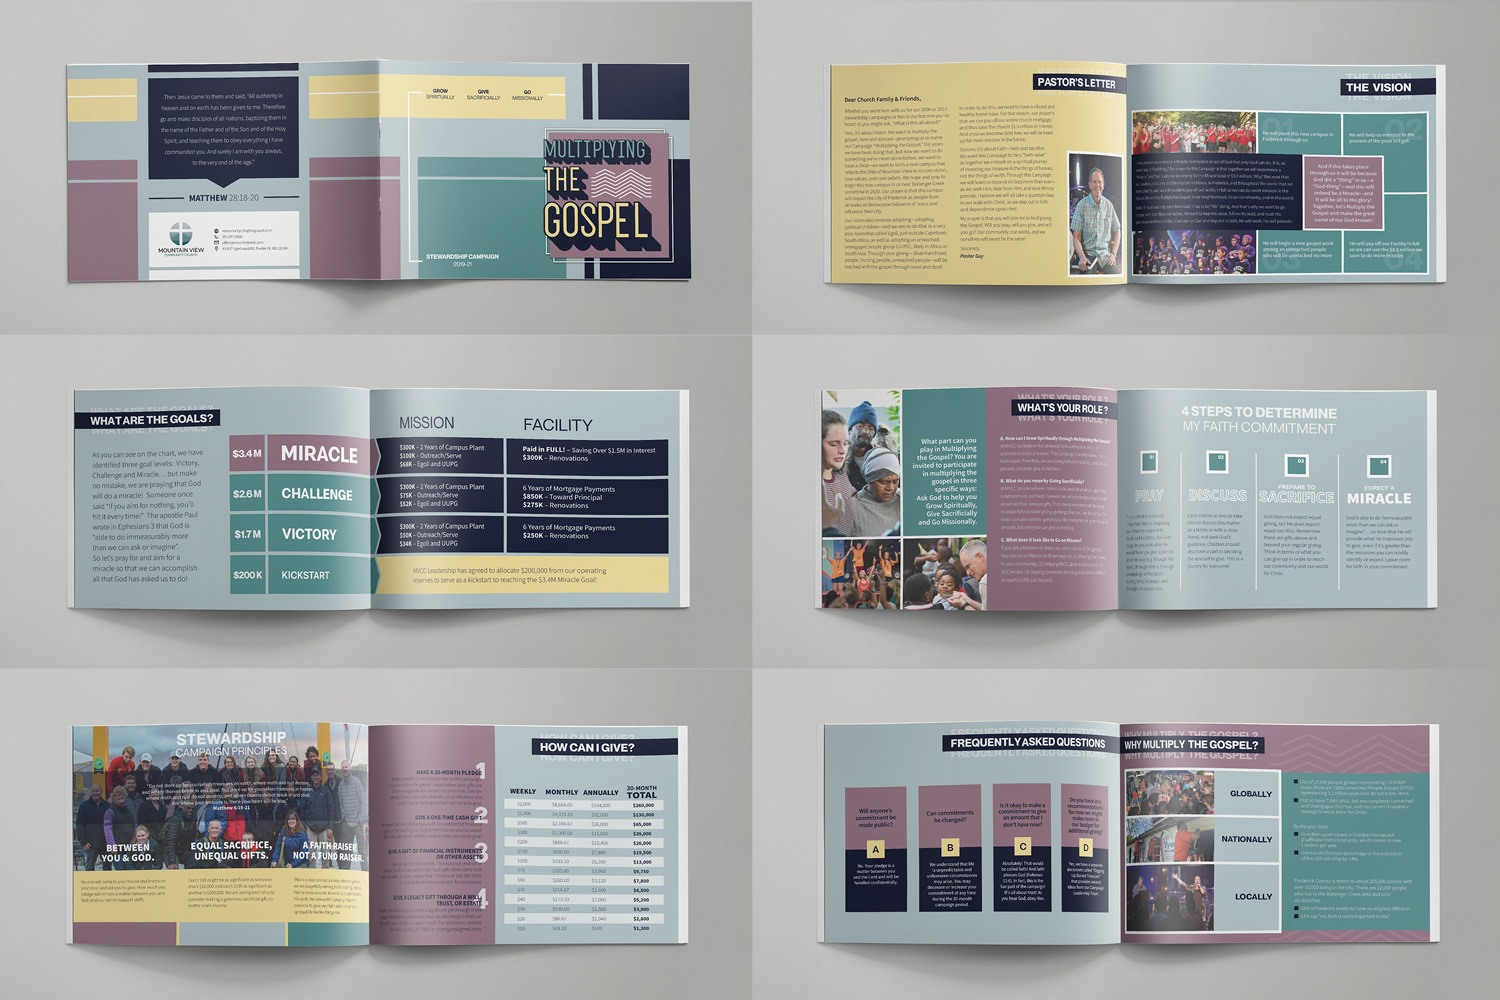 Booklet Design for Church Capital Campaign Brochures and Stewardship Slogans by Abstract Union